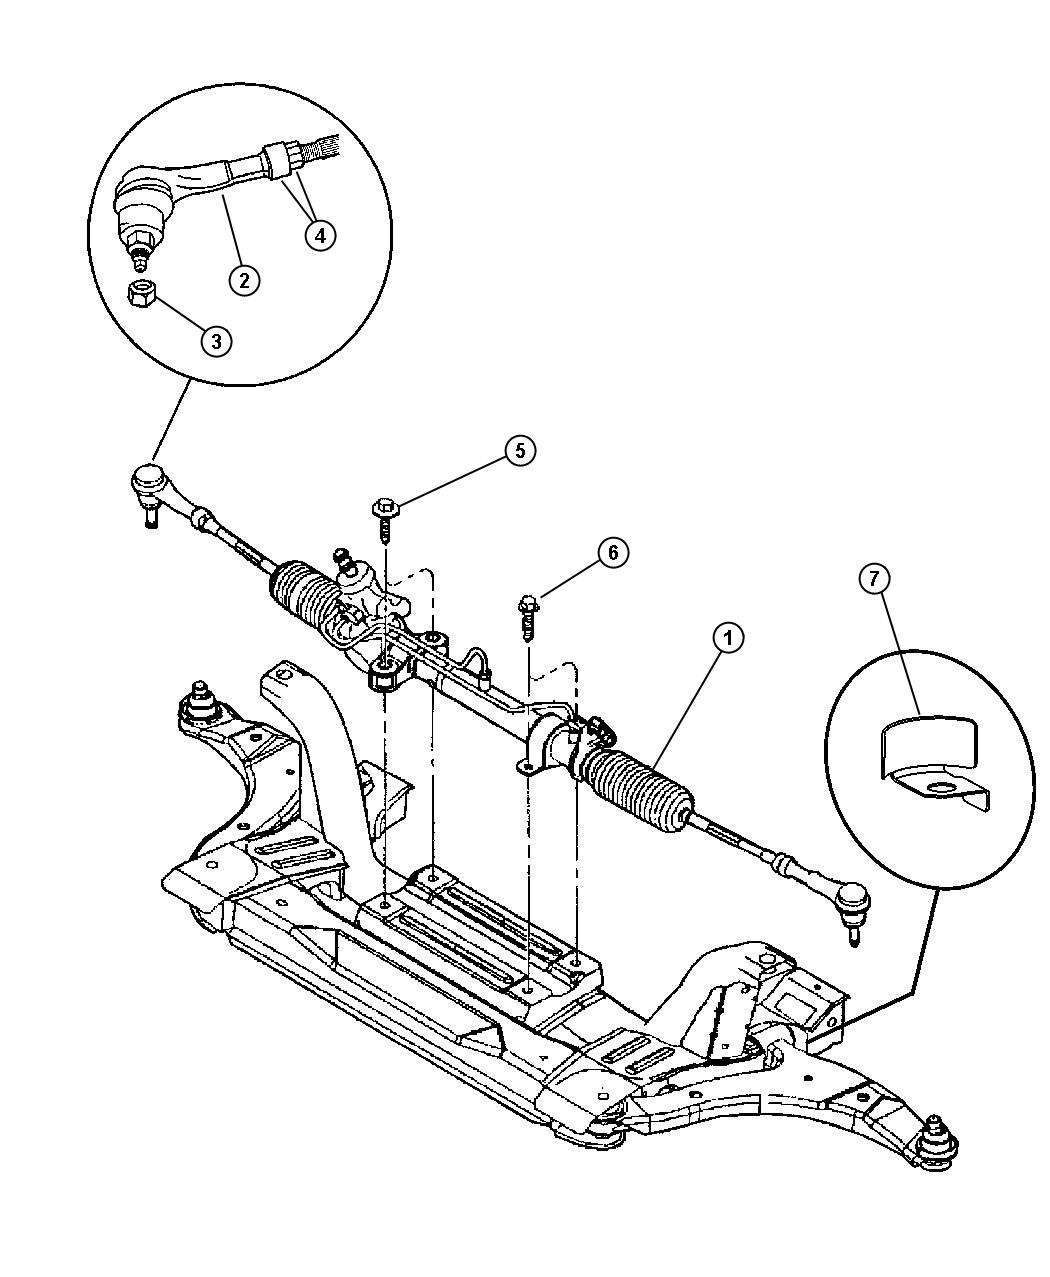 Dodge Neon Gear Rack And Pinion And Attaching Parts